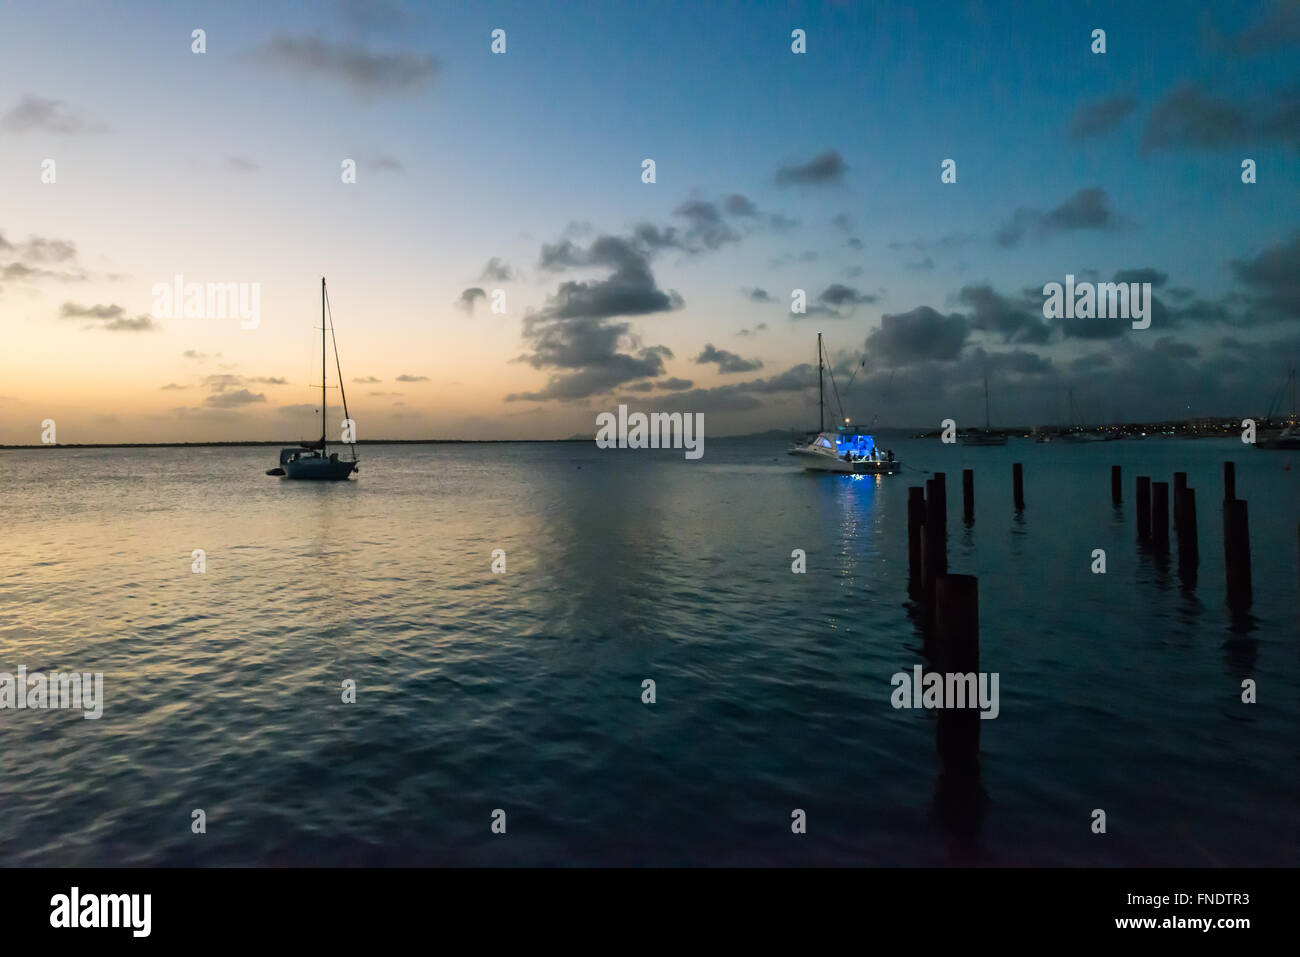 Beautiful sailing ships in the evening near the Kralendijk capital city of Bonaire - Stock Image